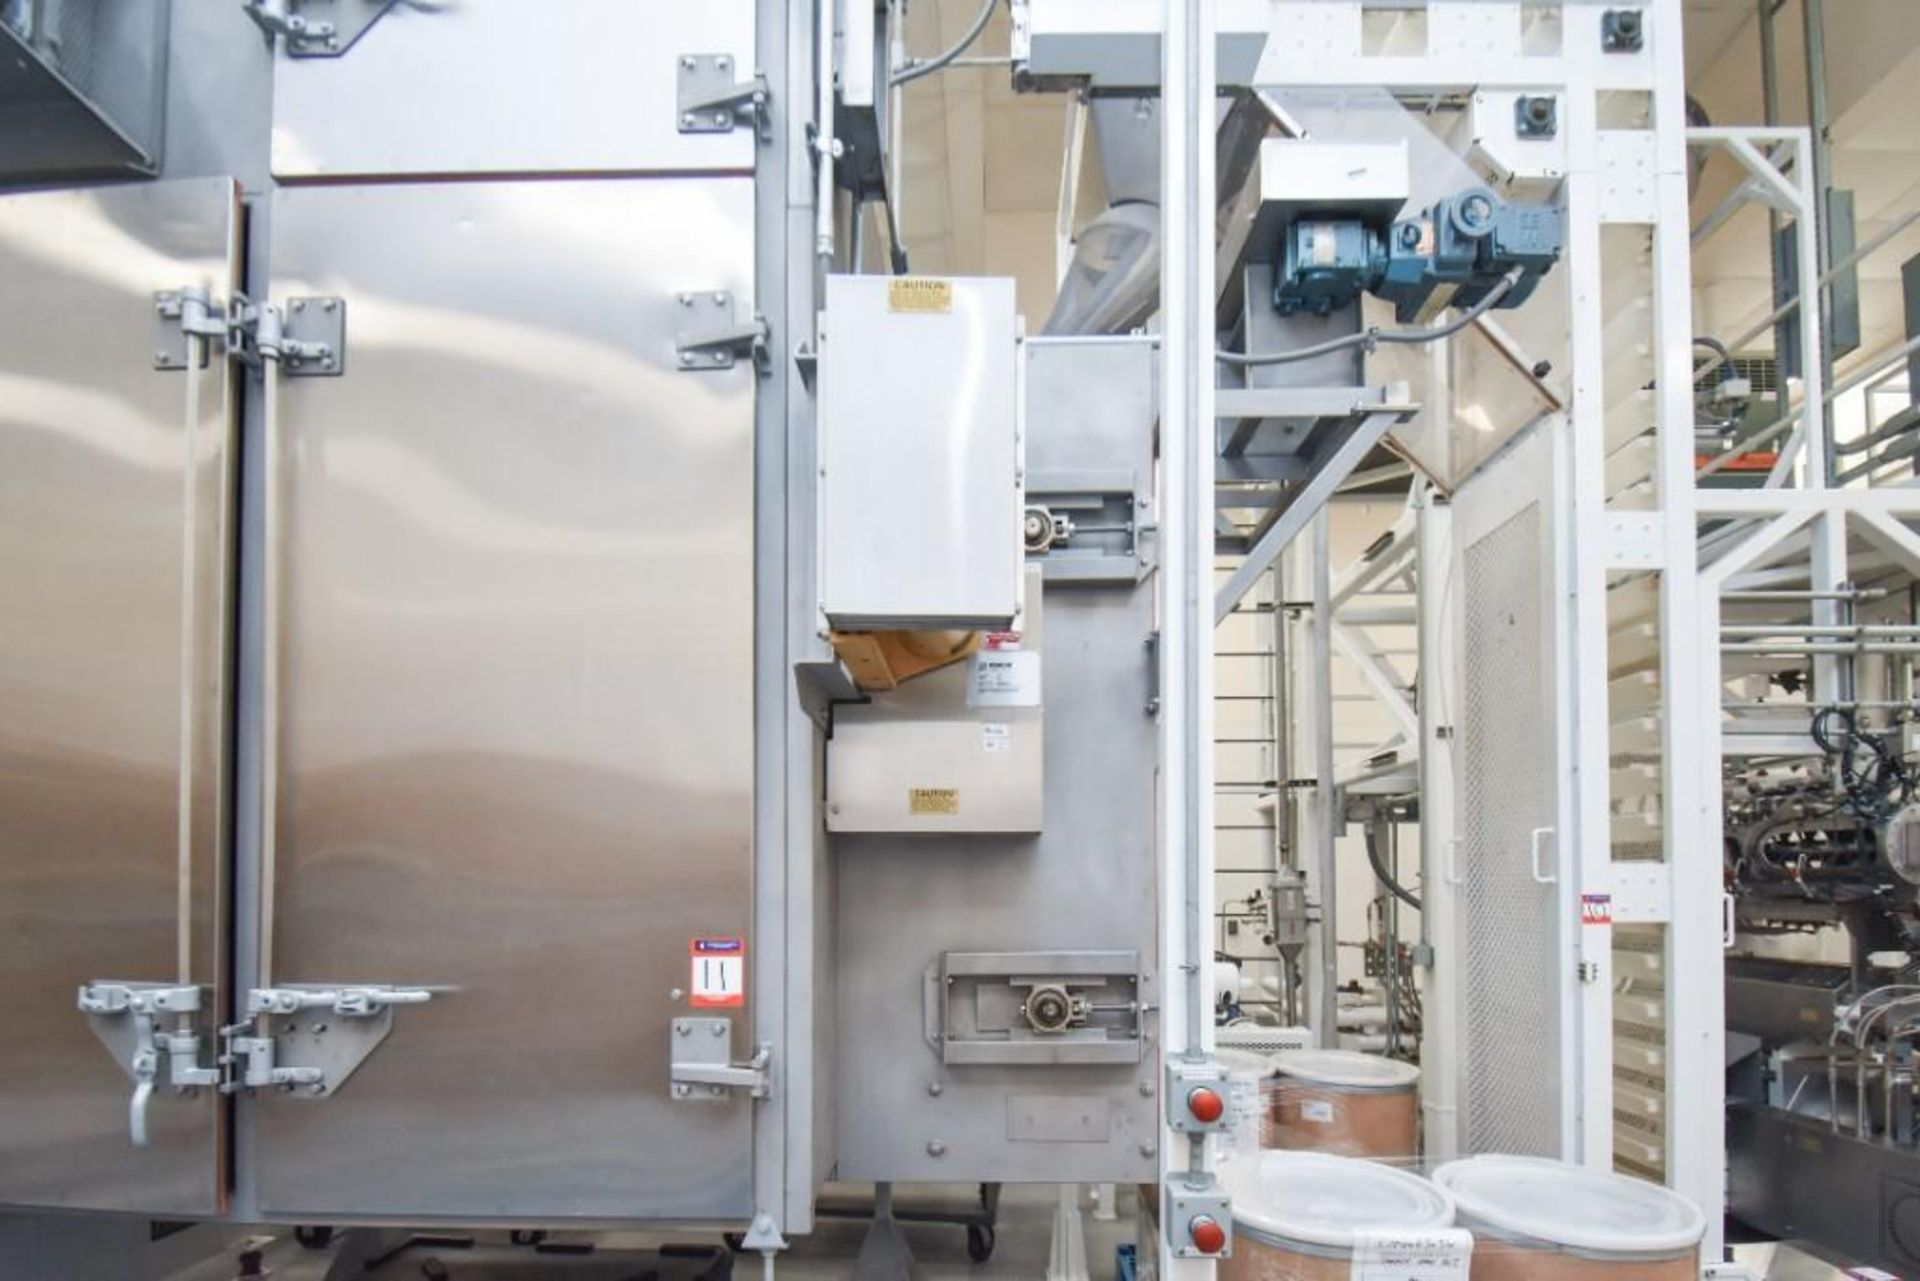 Wenger Dryer Oven Series IV 4800 - Image 3 of 7